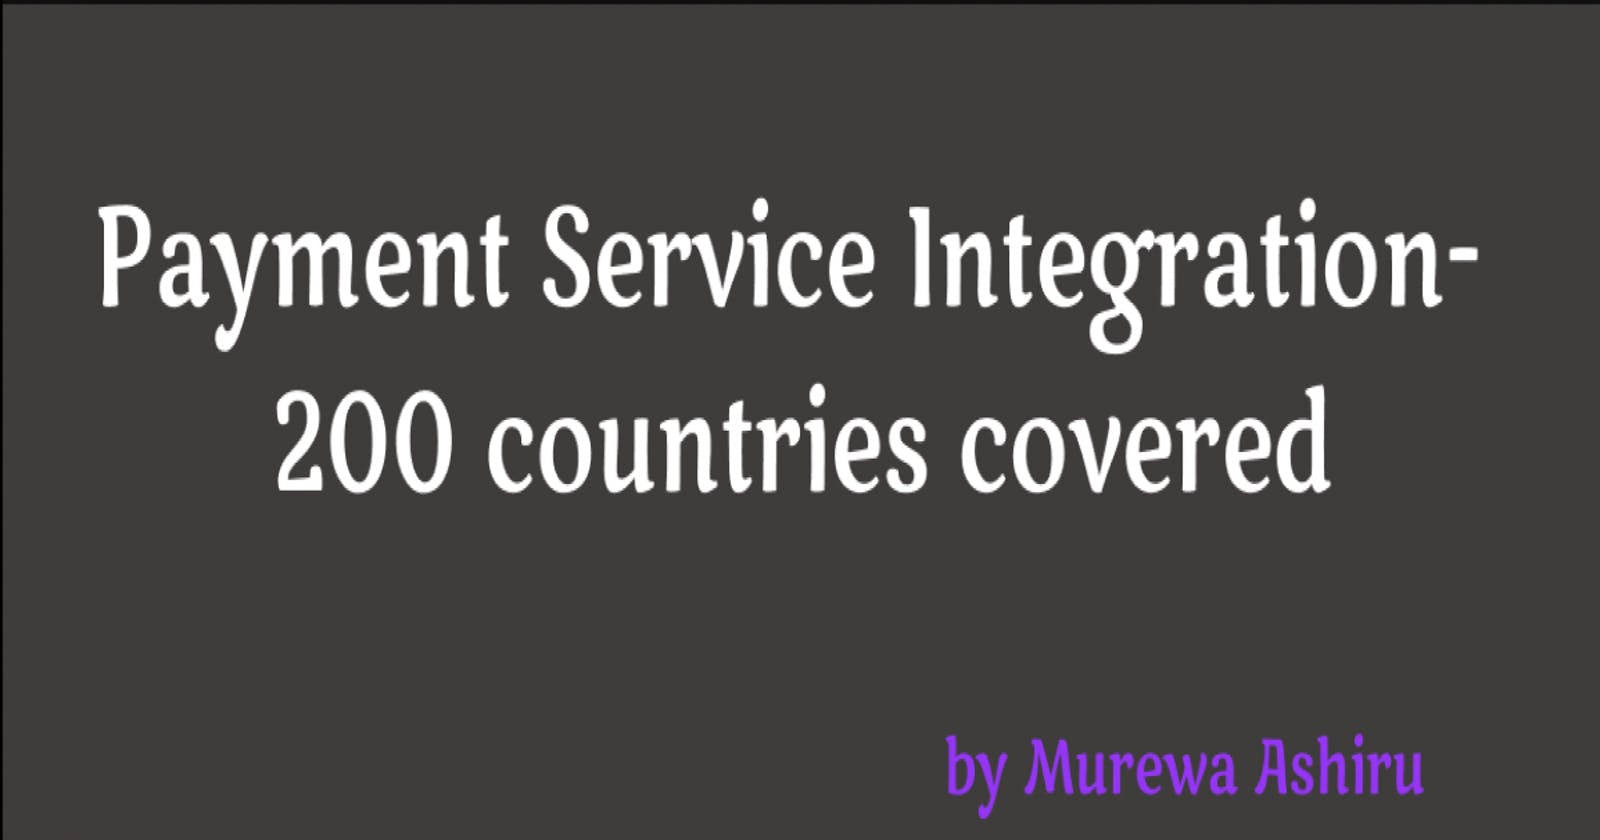 Payment Service Integration- 200 countries covered